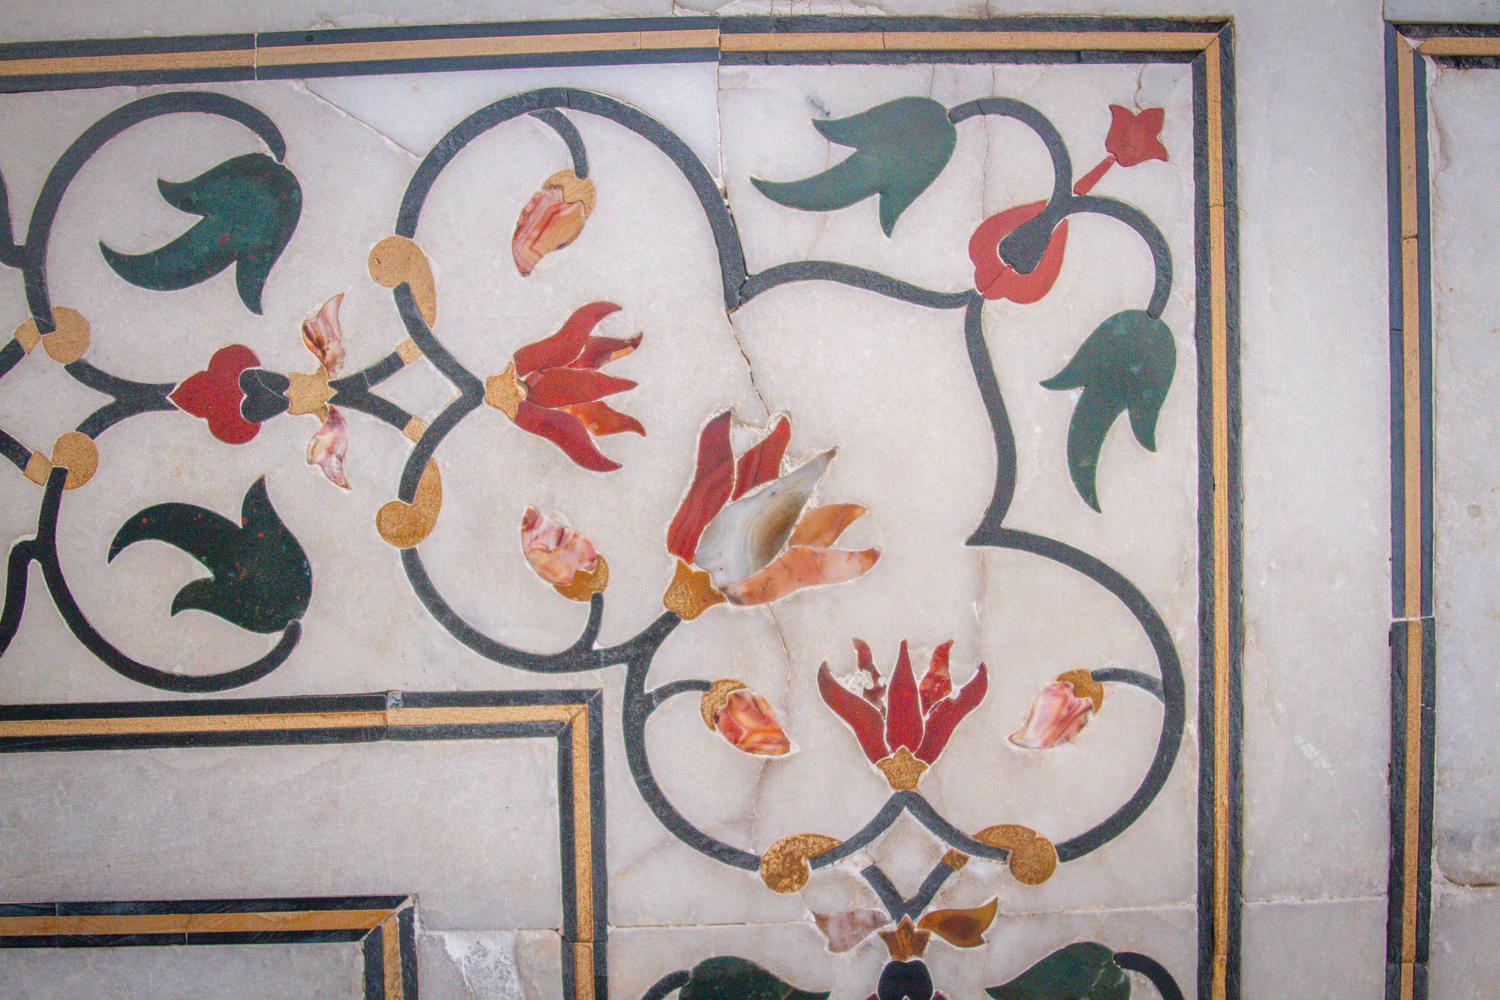 Some of the intricate stone inlays into the marble. So beautiful and artistic.